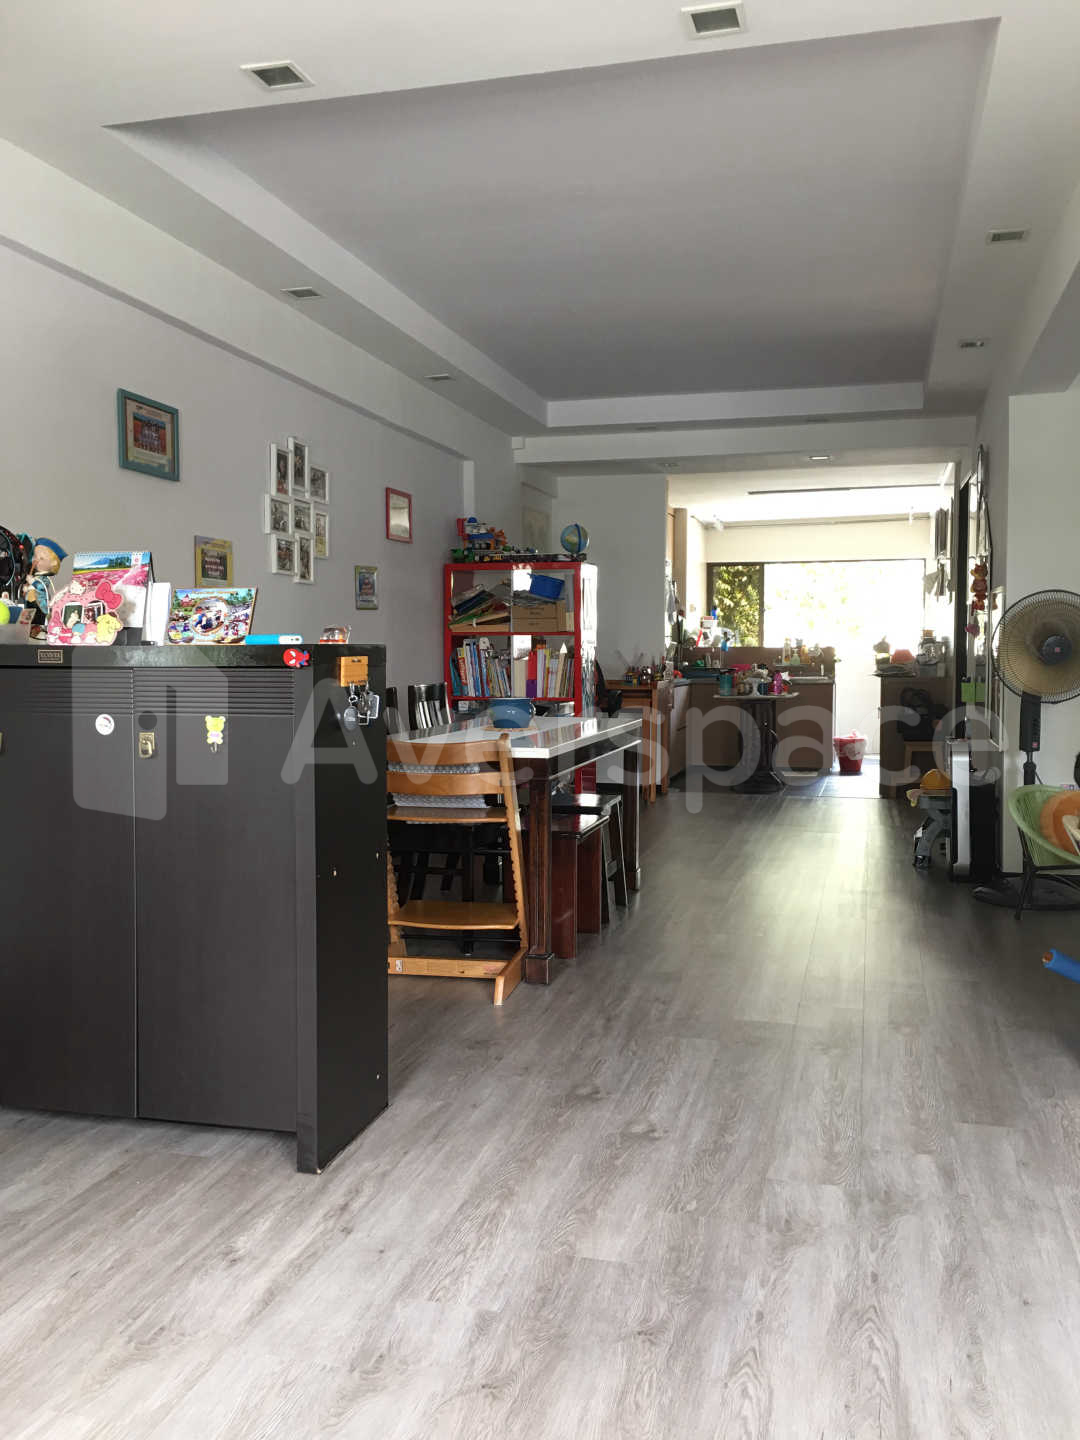 152 Ang Mo Kio Avenue 5, District 20 Singapore